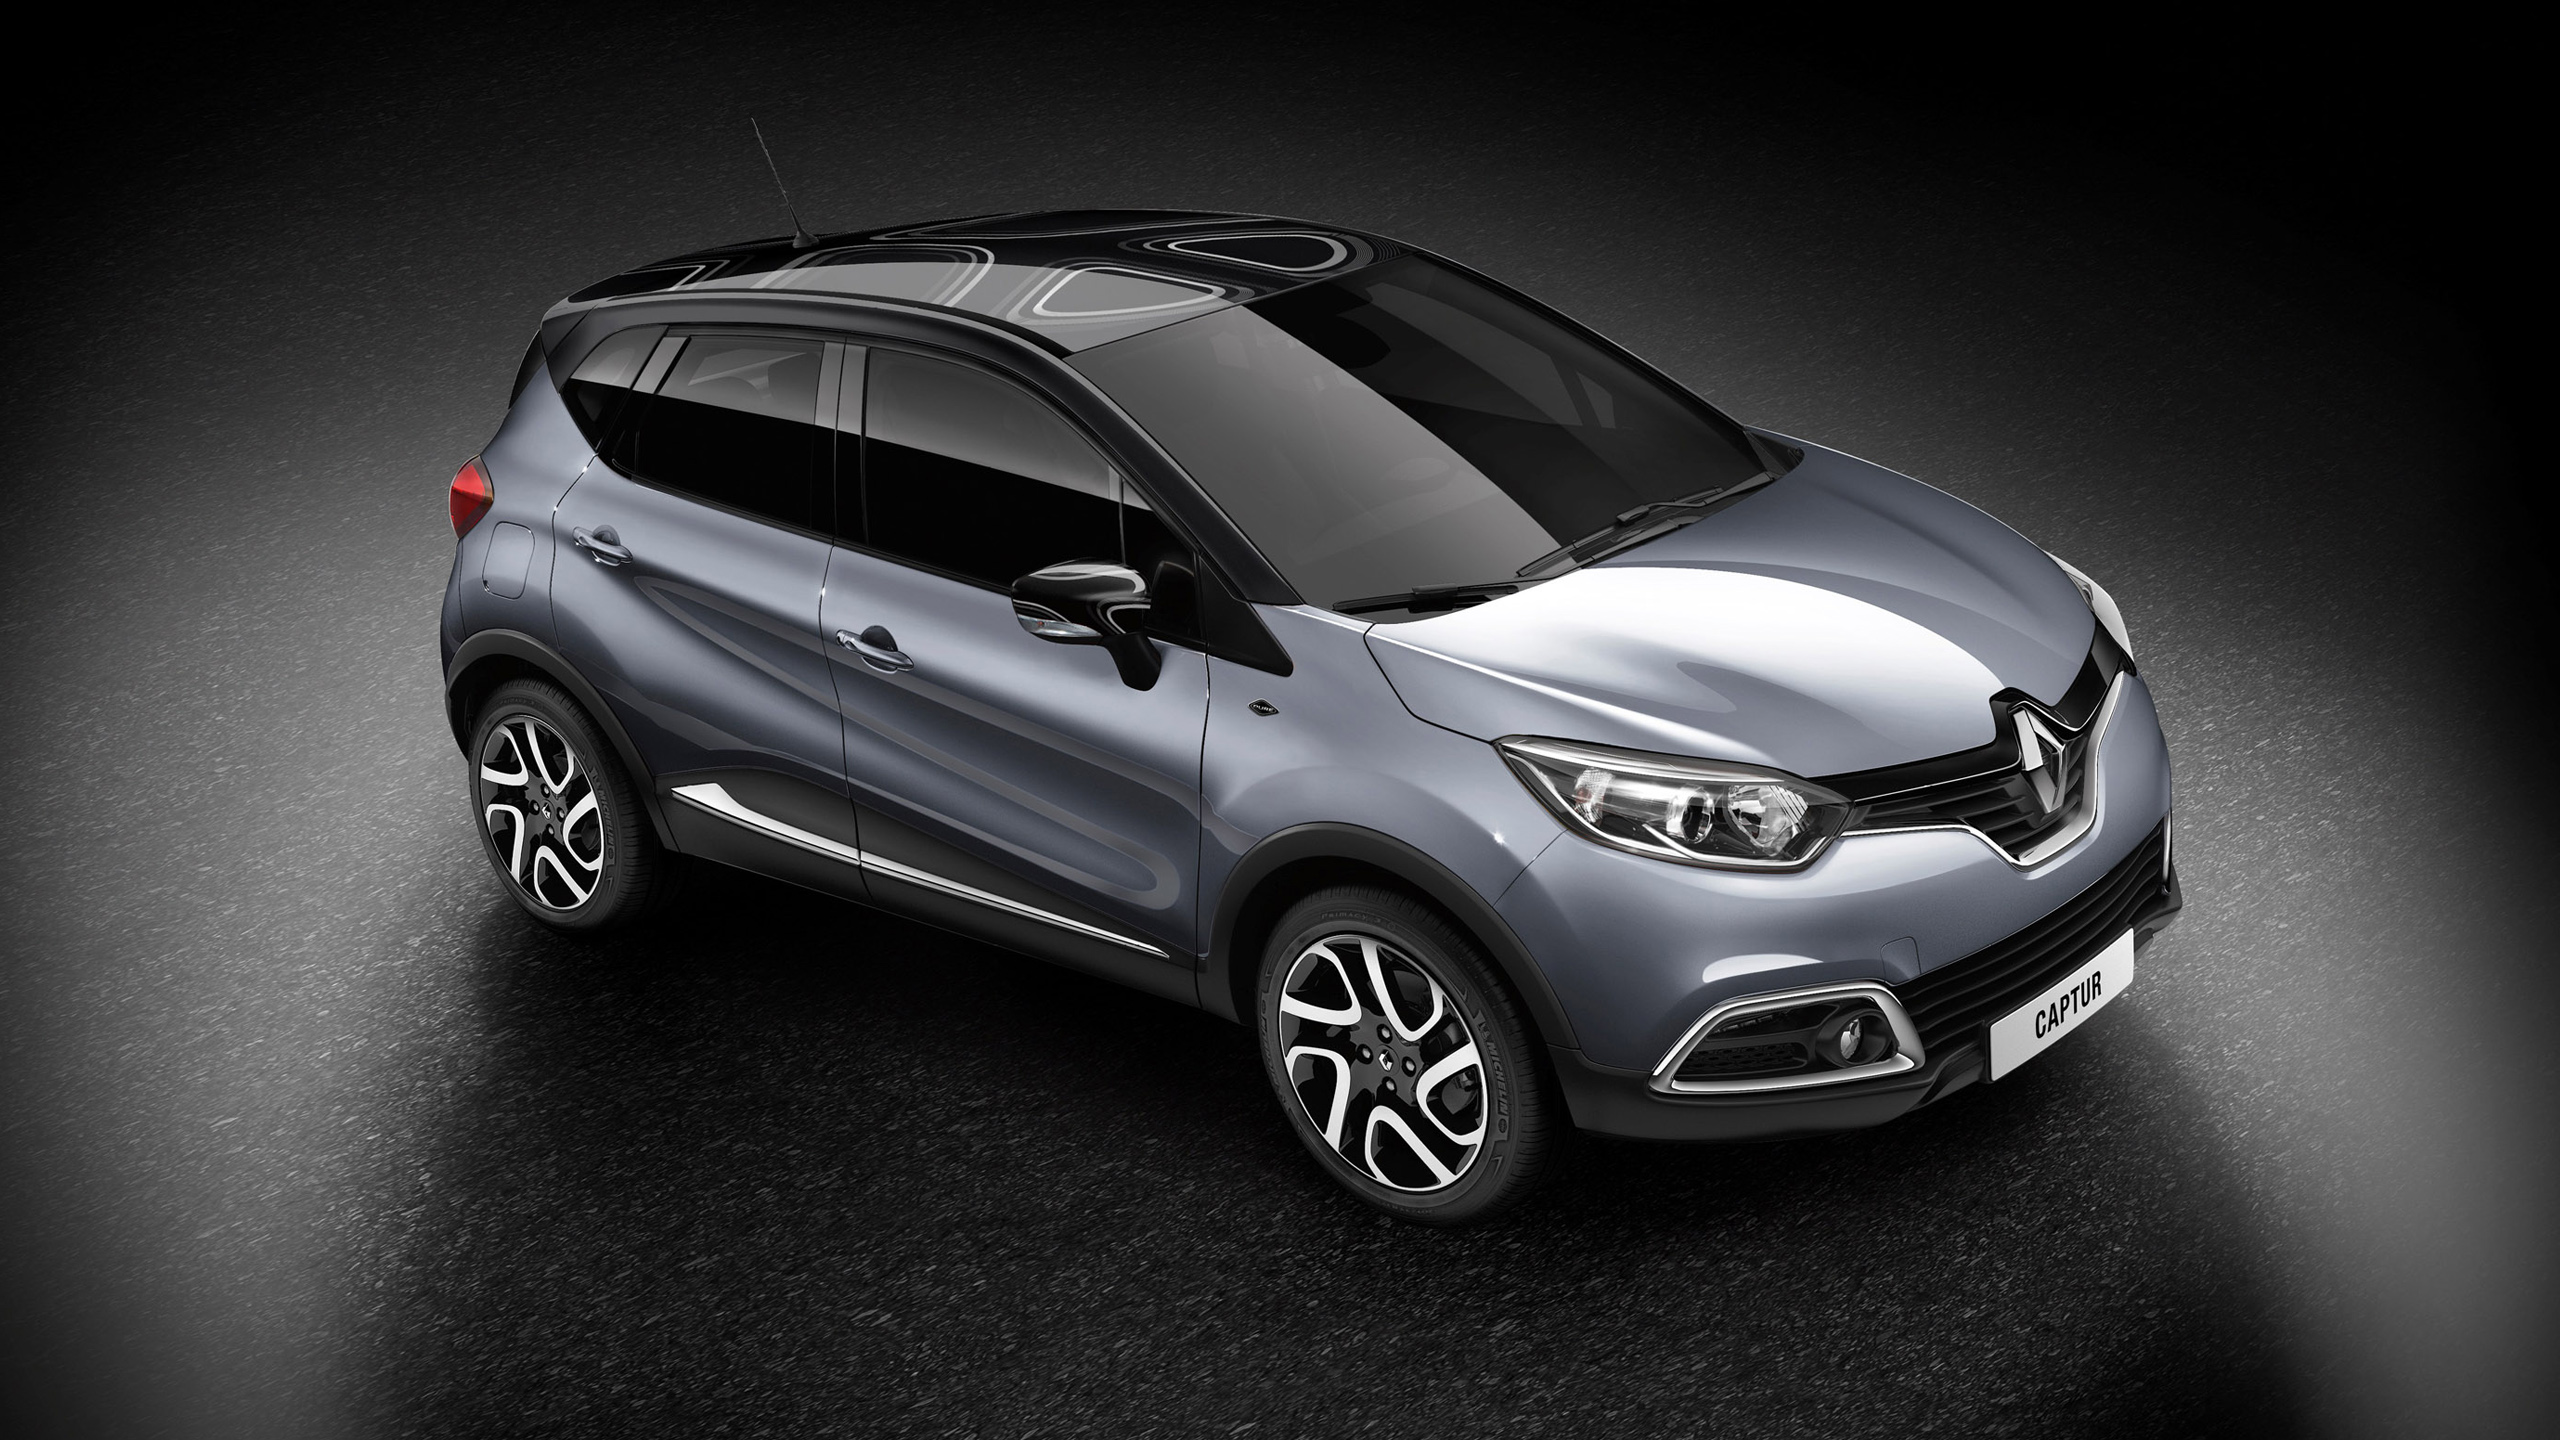 2015 renault captur pure limited edition wallpaper hd. Black Bedroom Furniture Sets. Home Design Ideas